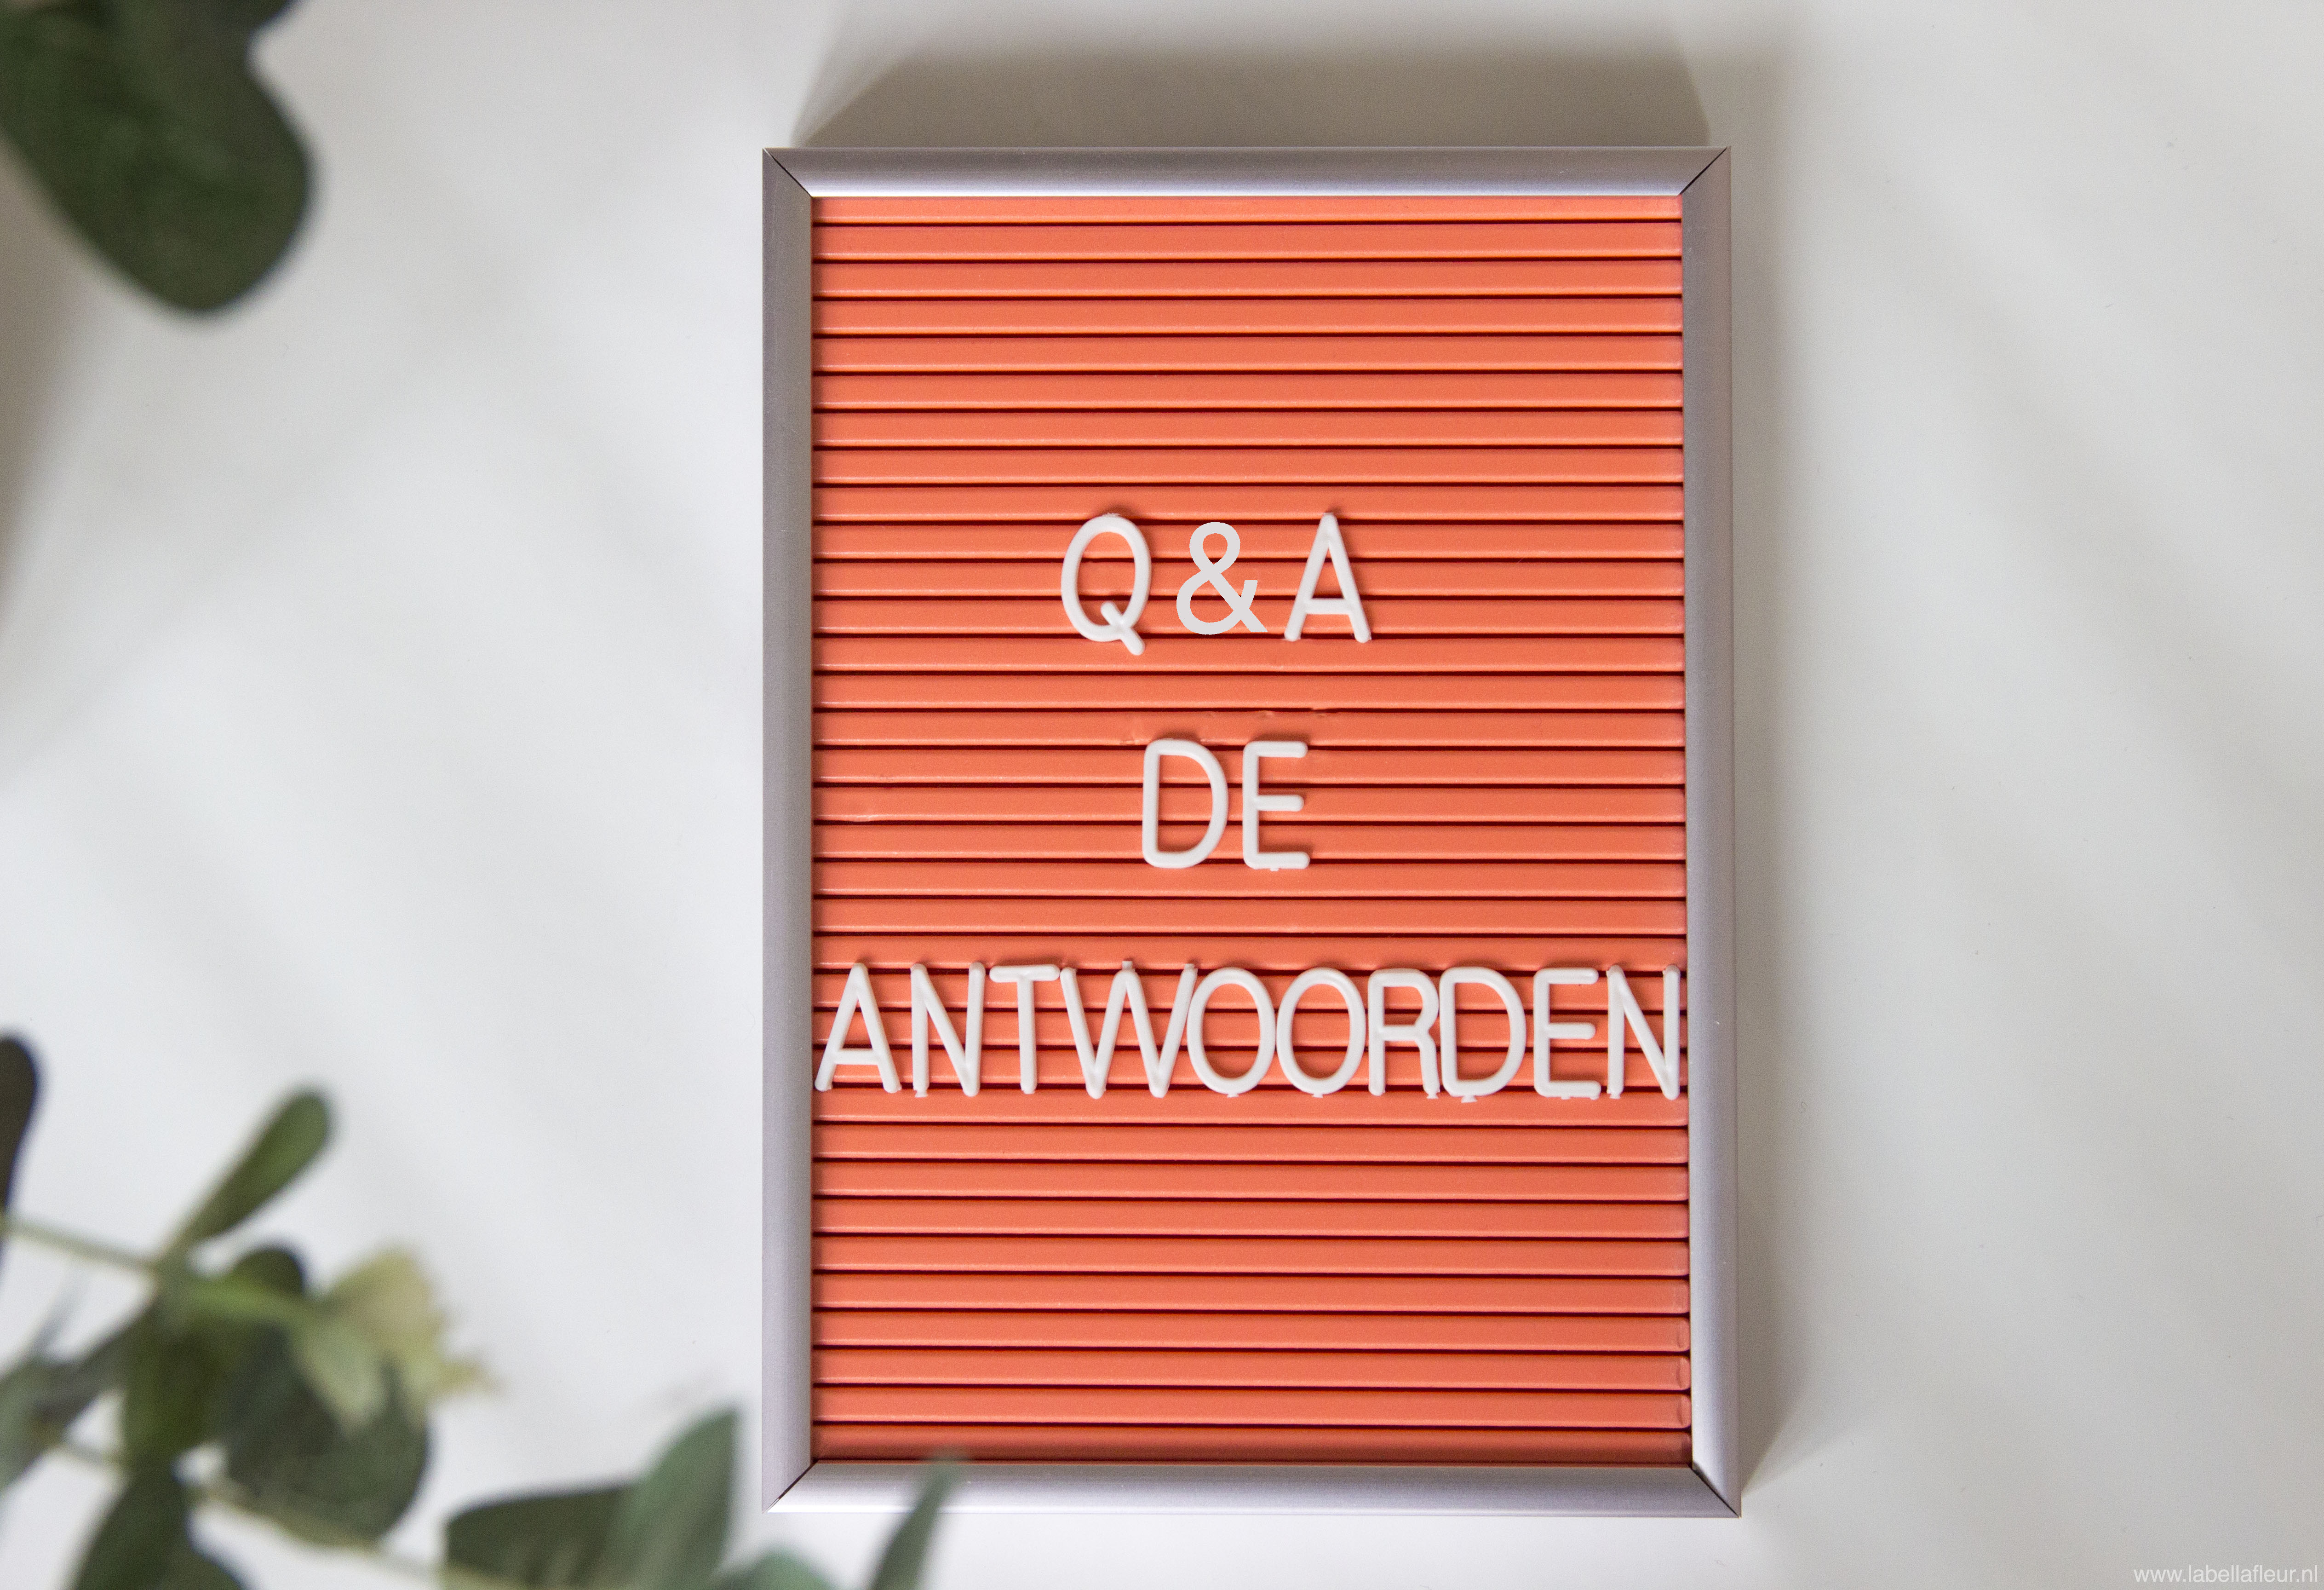 Personal, Q&A